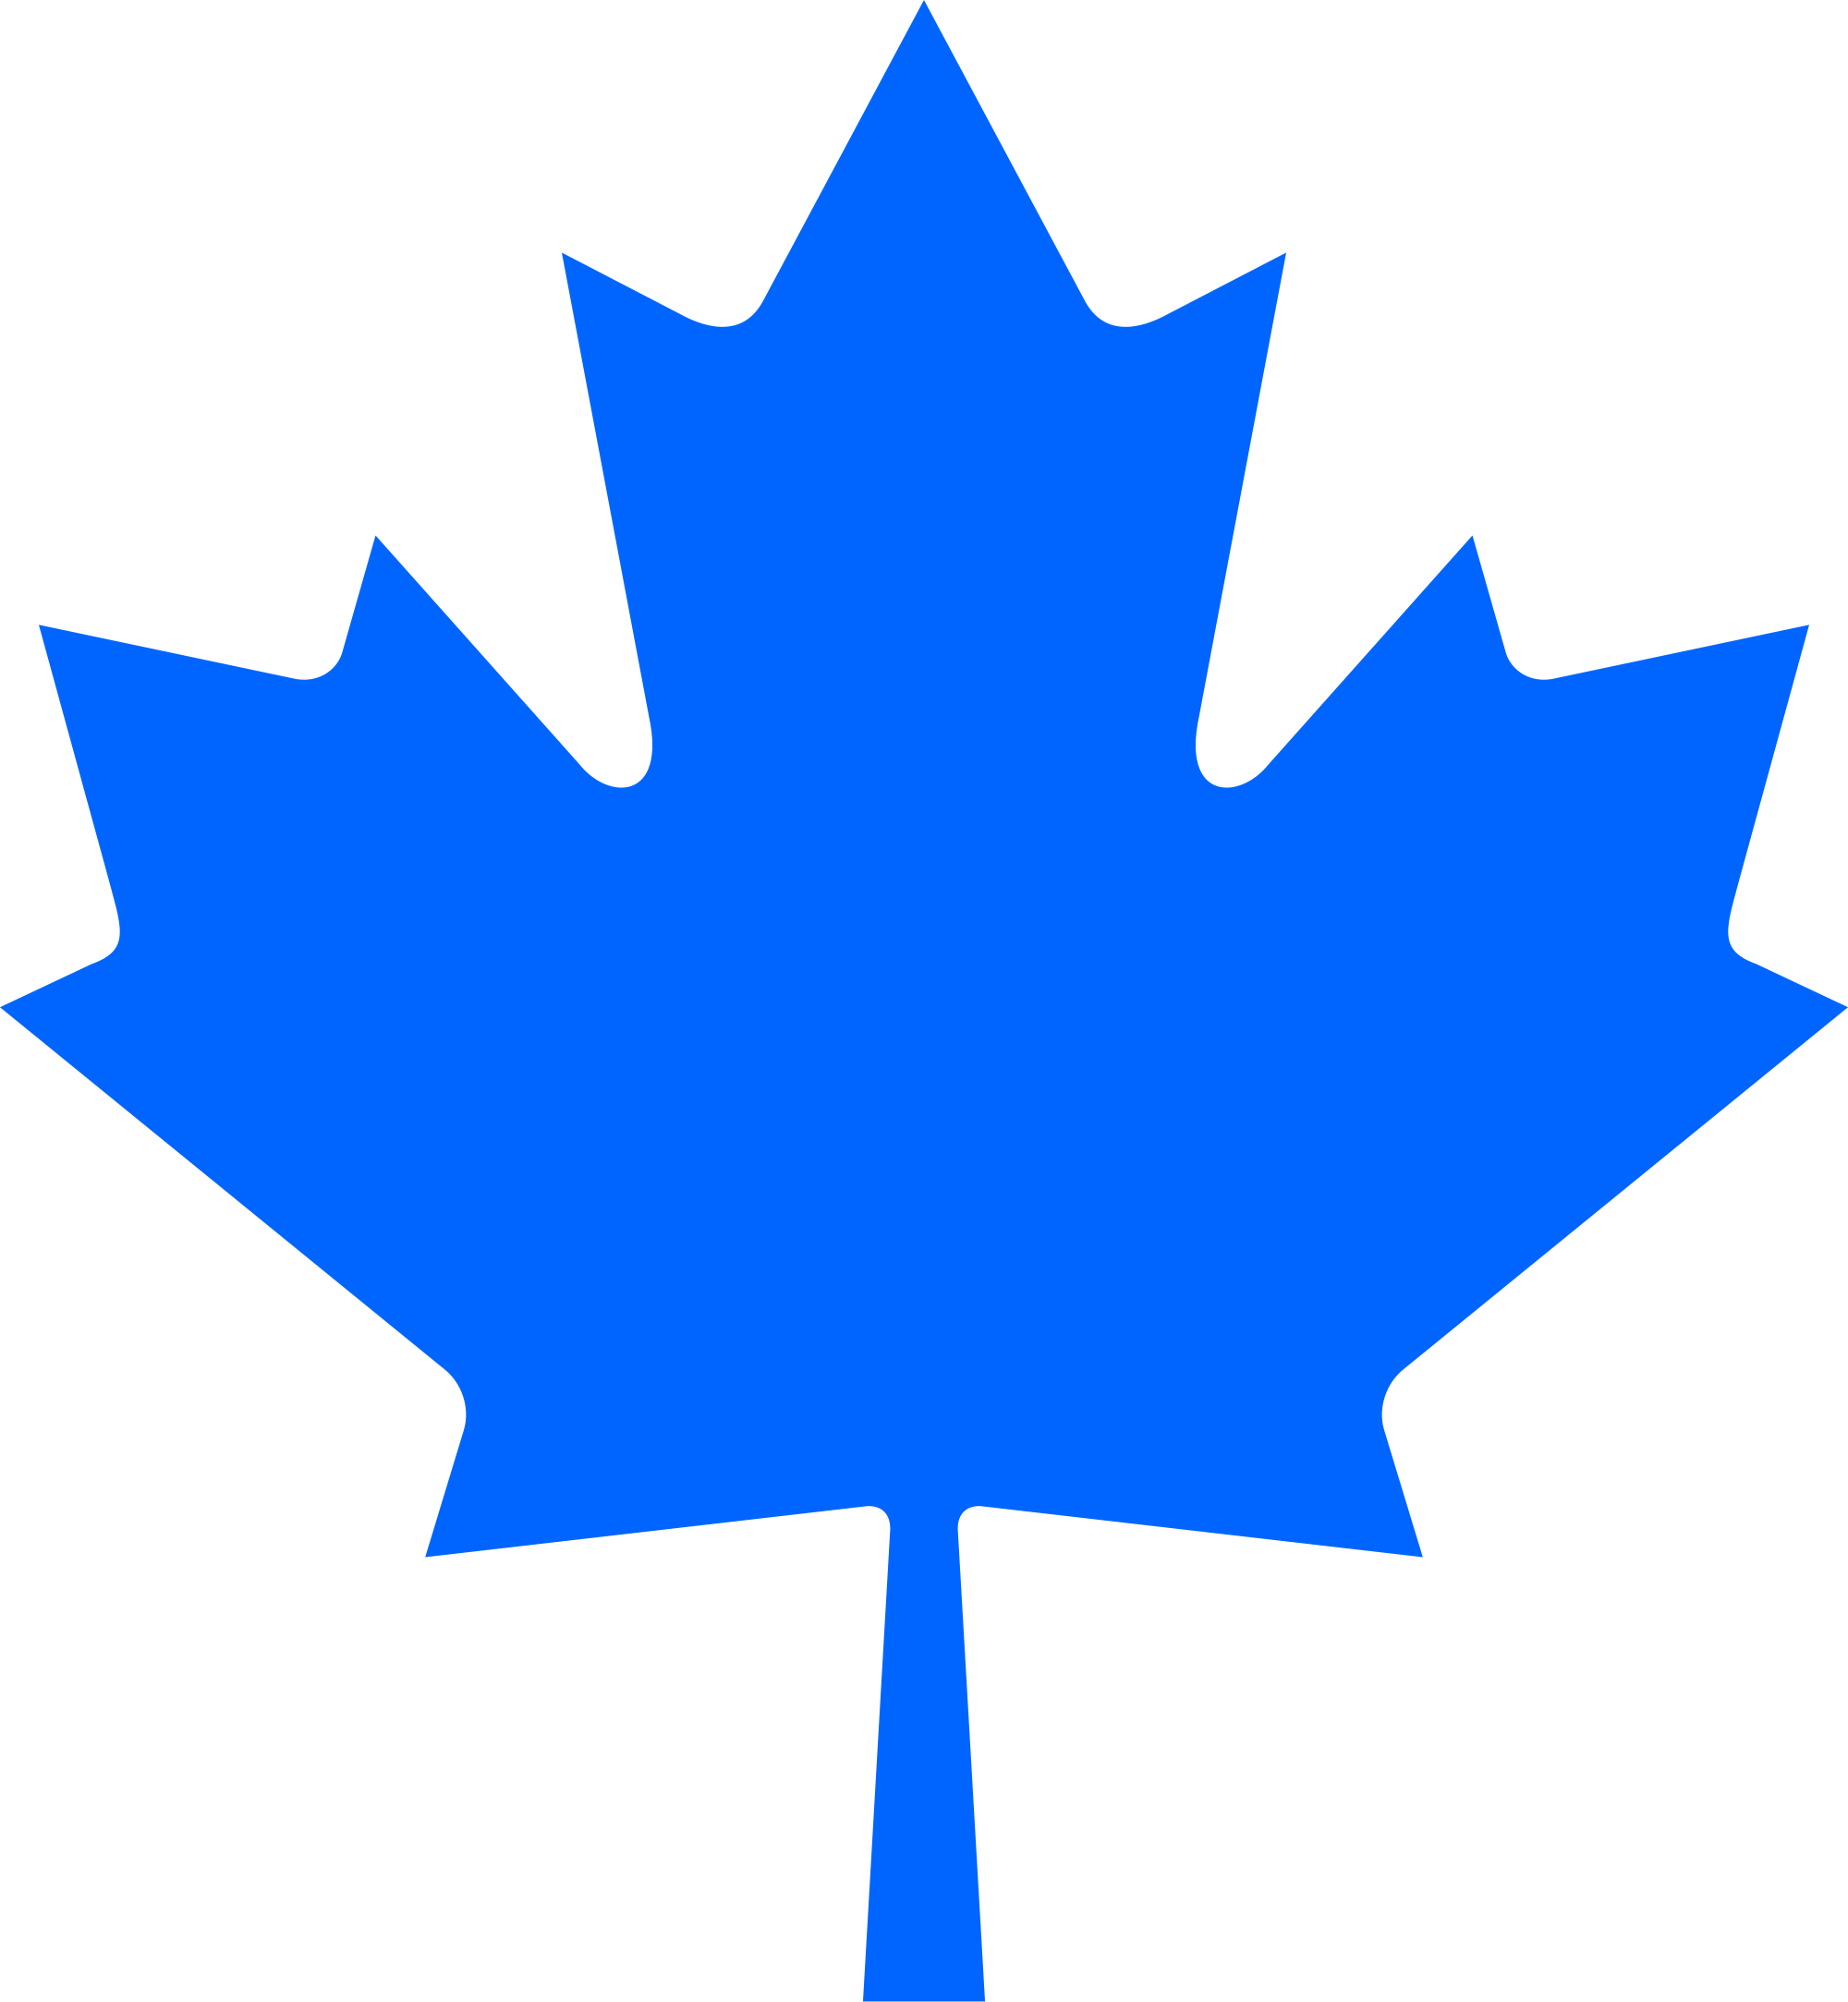 2000x2167 Maple Leaf Clipart Mapple